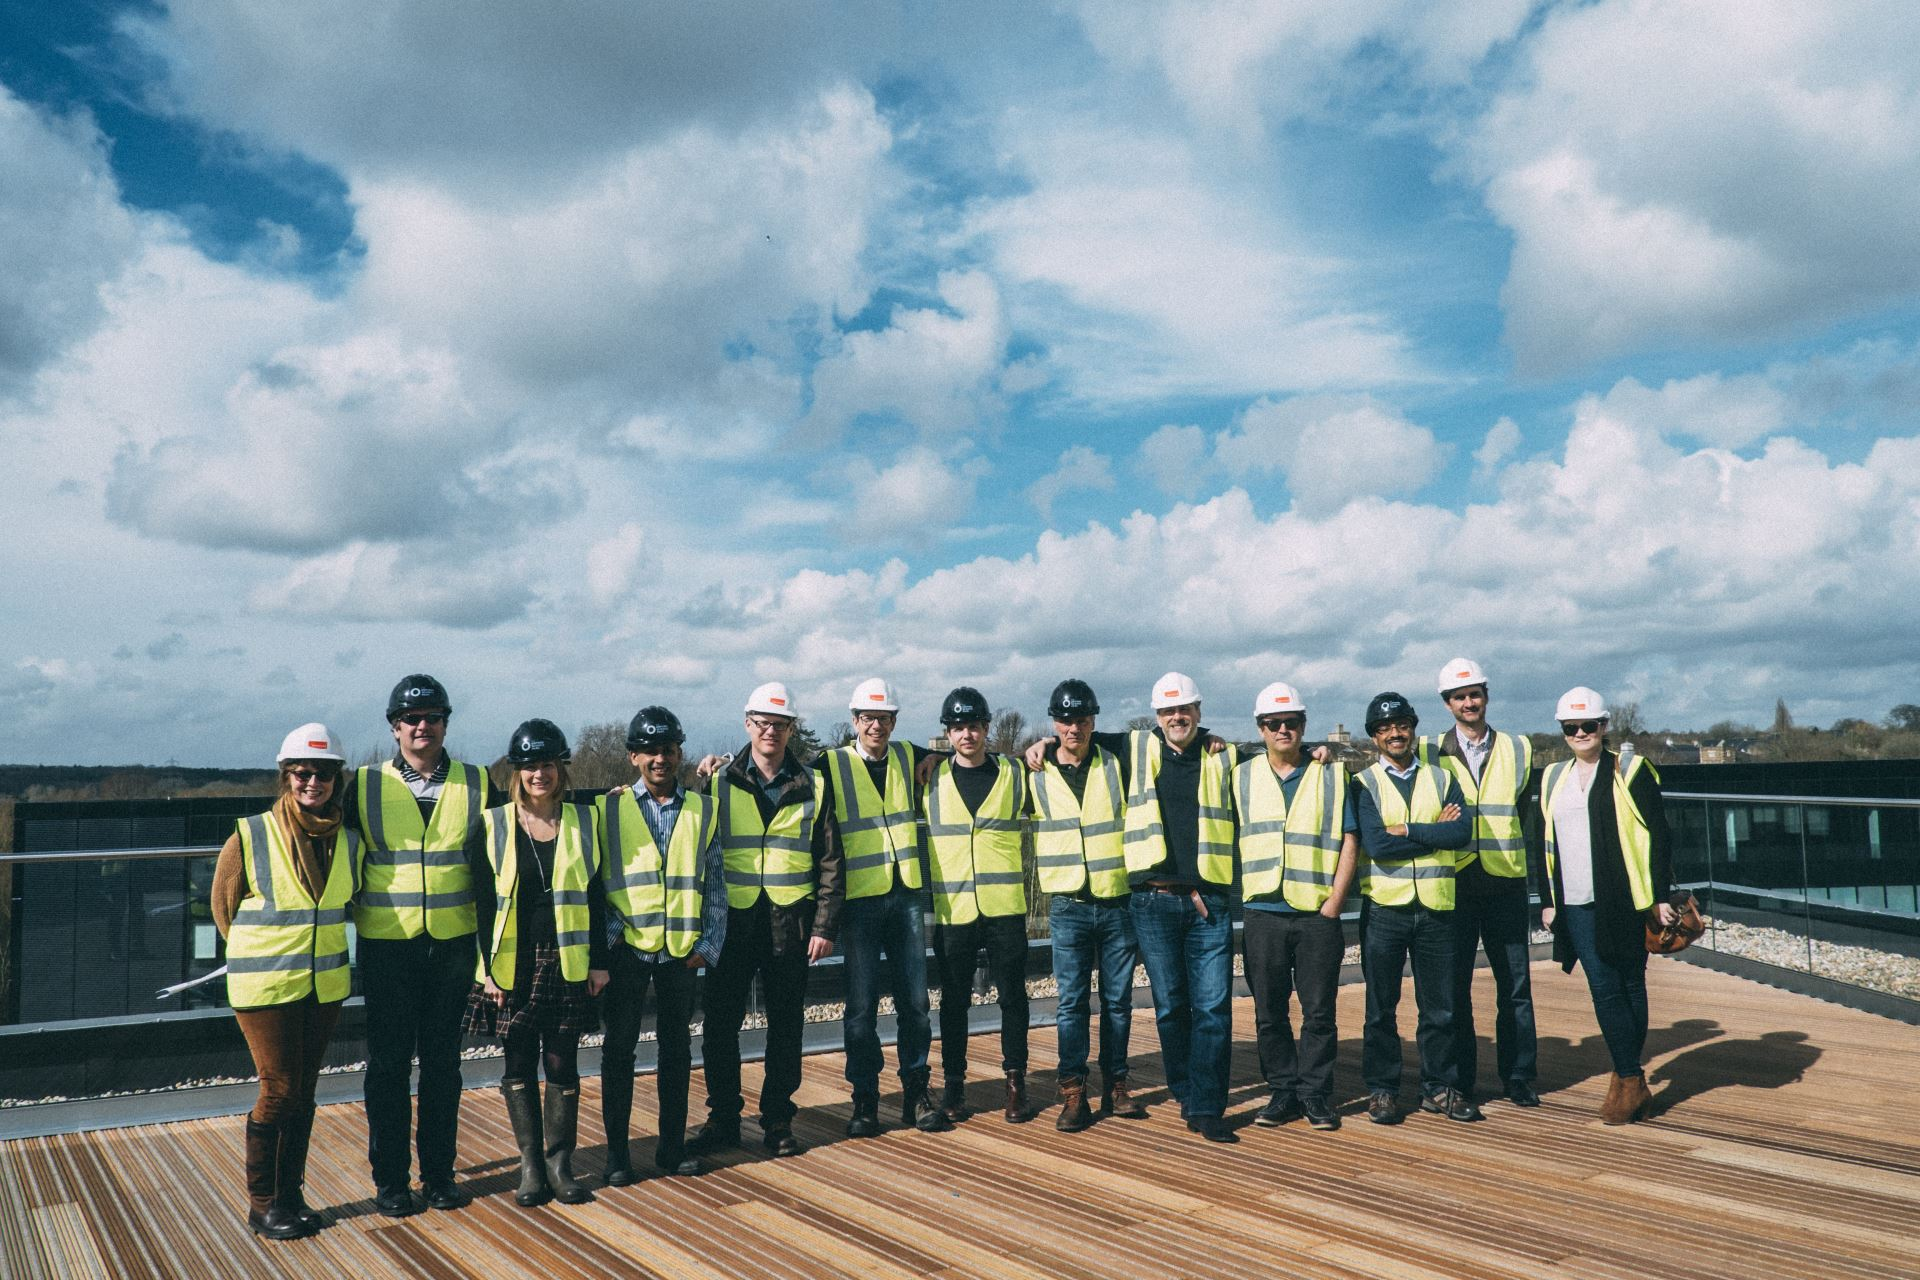 Fuel3D to establish new headquarters on The Oxford Science Park